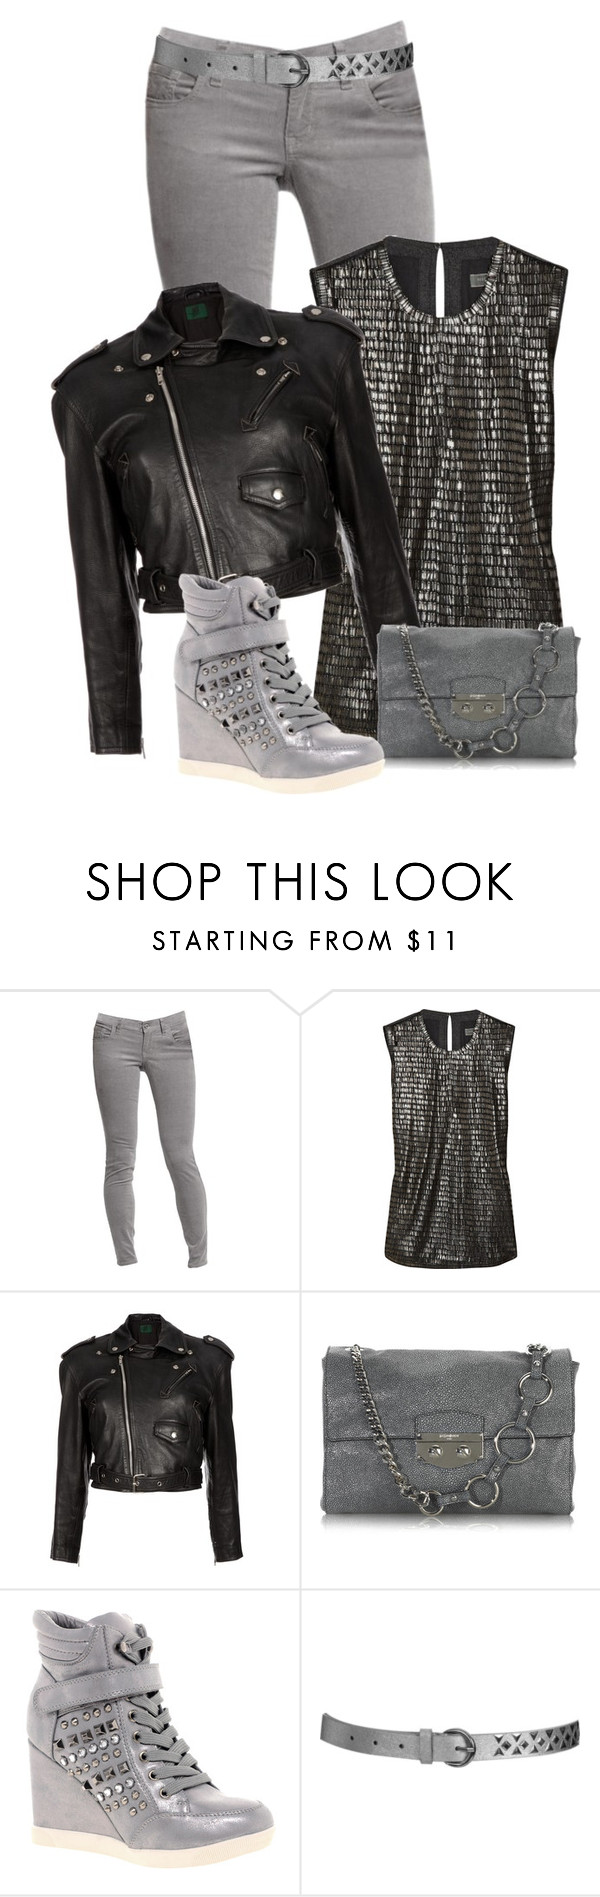 """Studded Wedge Sneakers"" by chrissykp ❤ liked on Polyvore featuring Old Navy, Reed Krakoff, Jean-Paul Gaultier, Yves Saint Laurent, Timeless, Wet Seal, studs, snake print, cropped jackets and metallics"